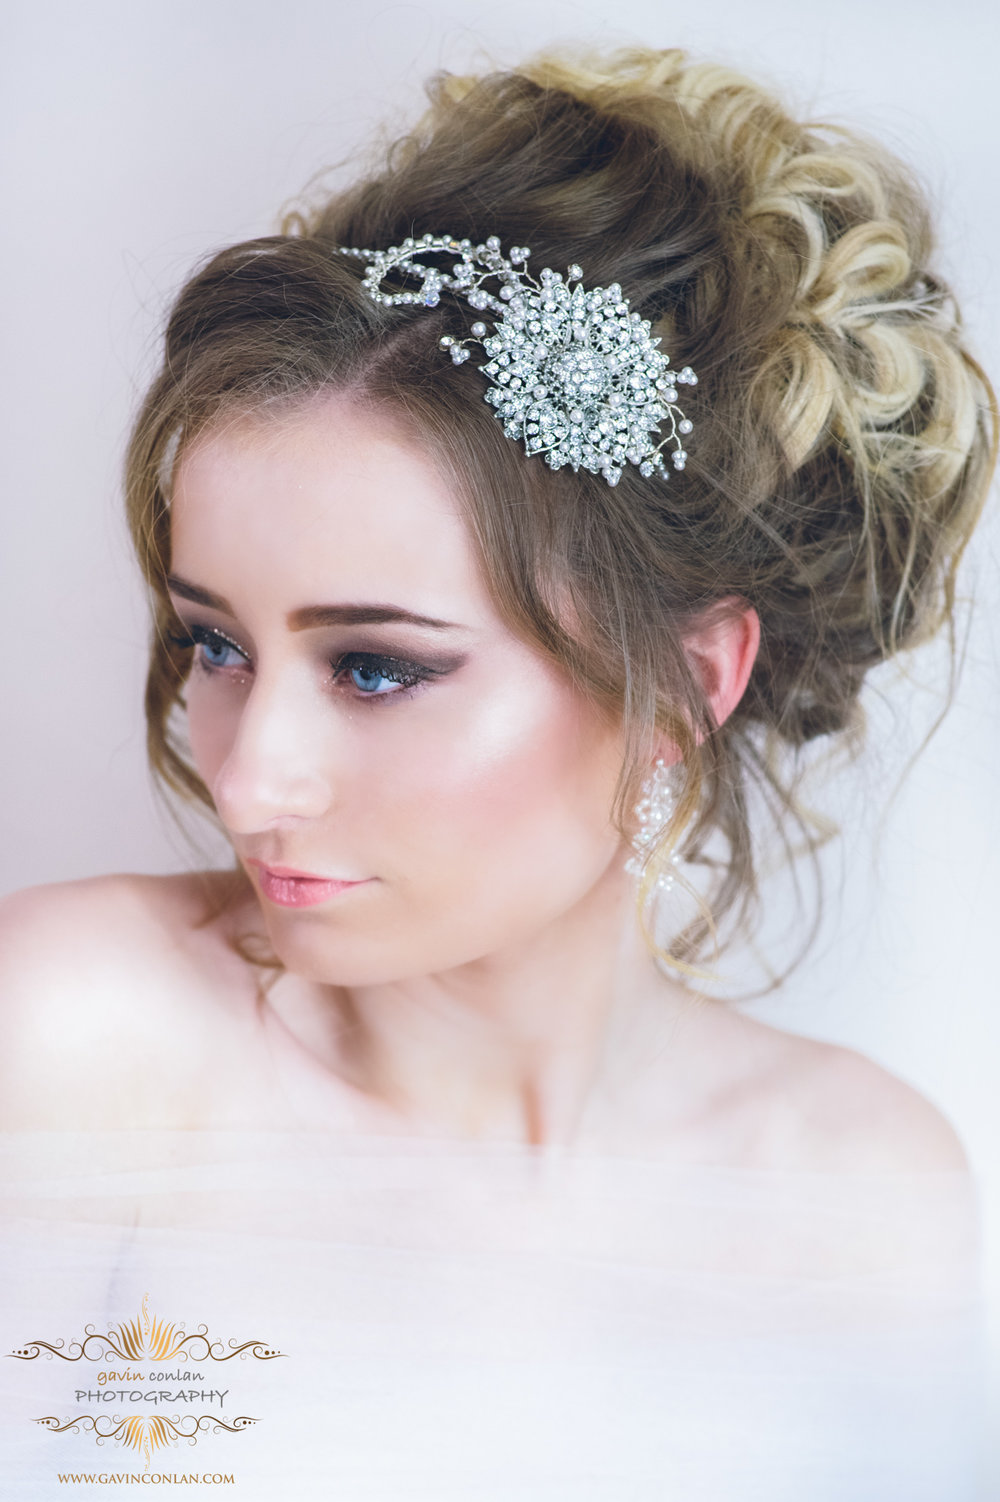 creative-bridal-hair-make-up-jewellery-photo-shoot-gavinconlanphotography-20